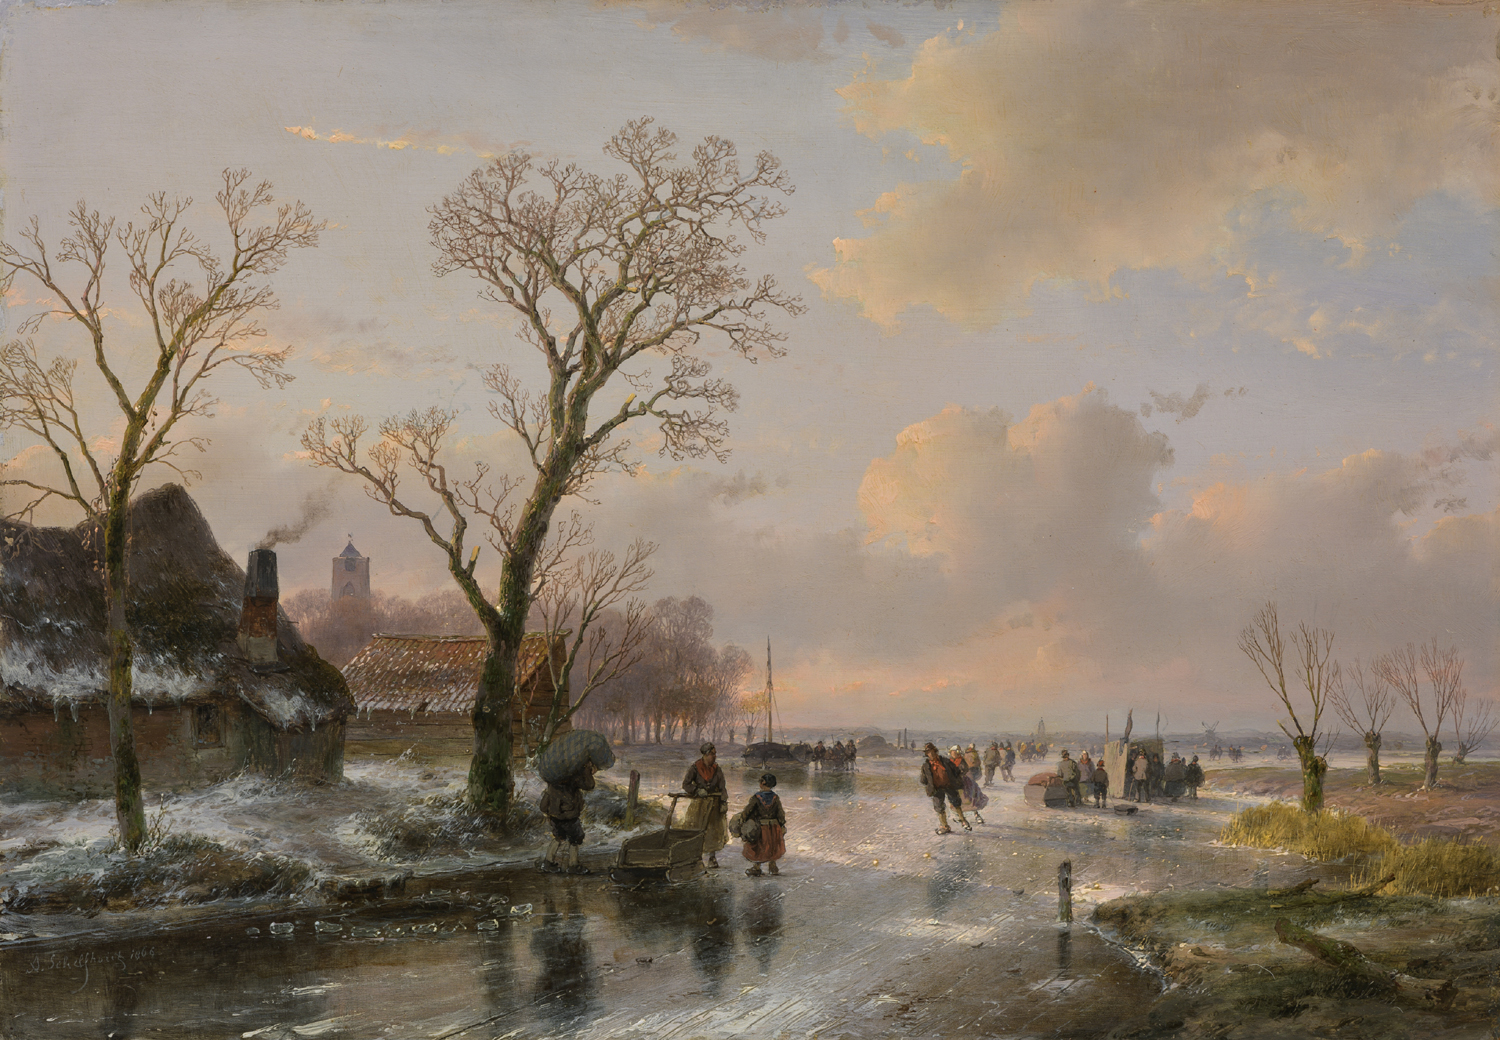 Andreas Schelfhout | A Dutch winter landscape with figures on the ice | Kunsthandel Bies | Bies Gallery